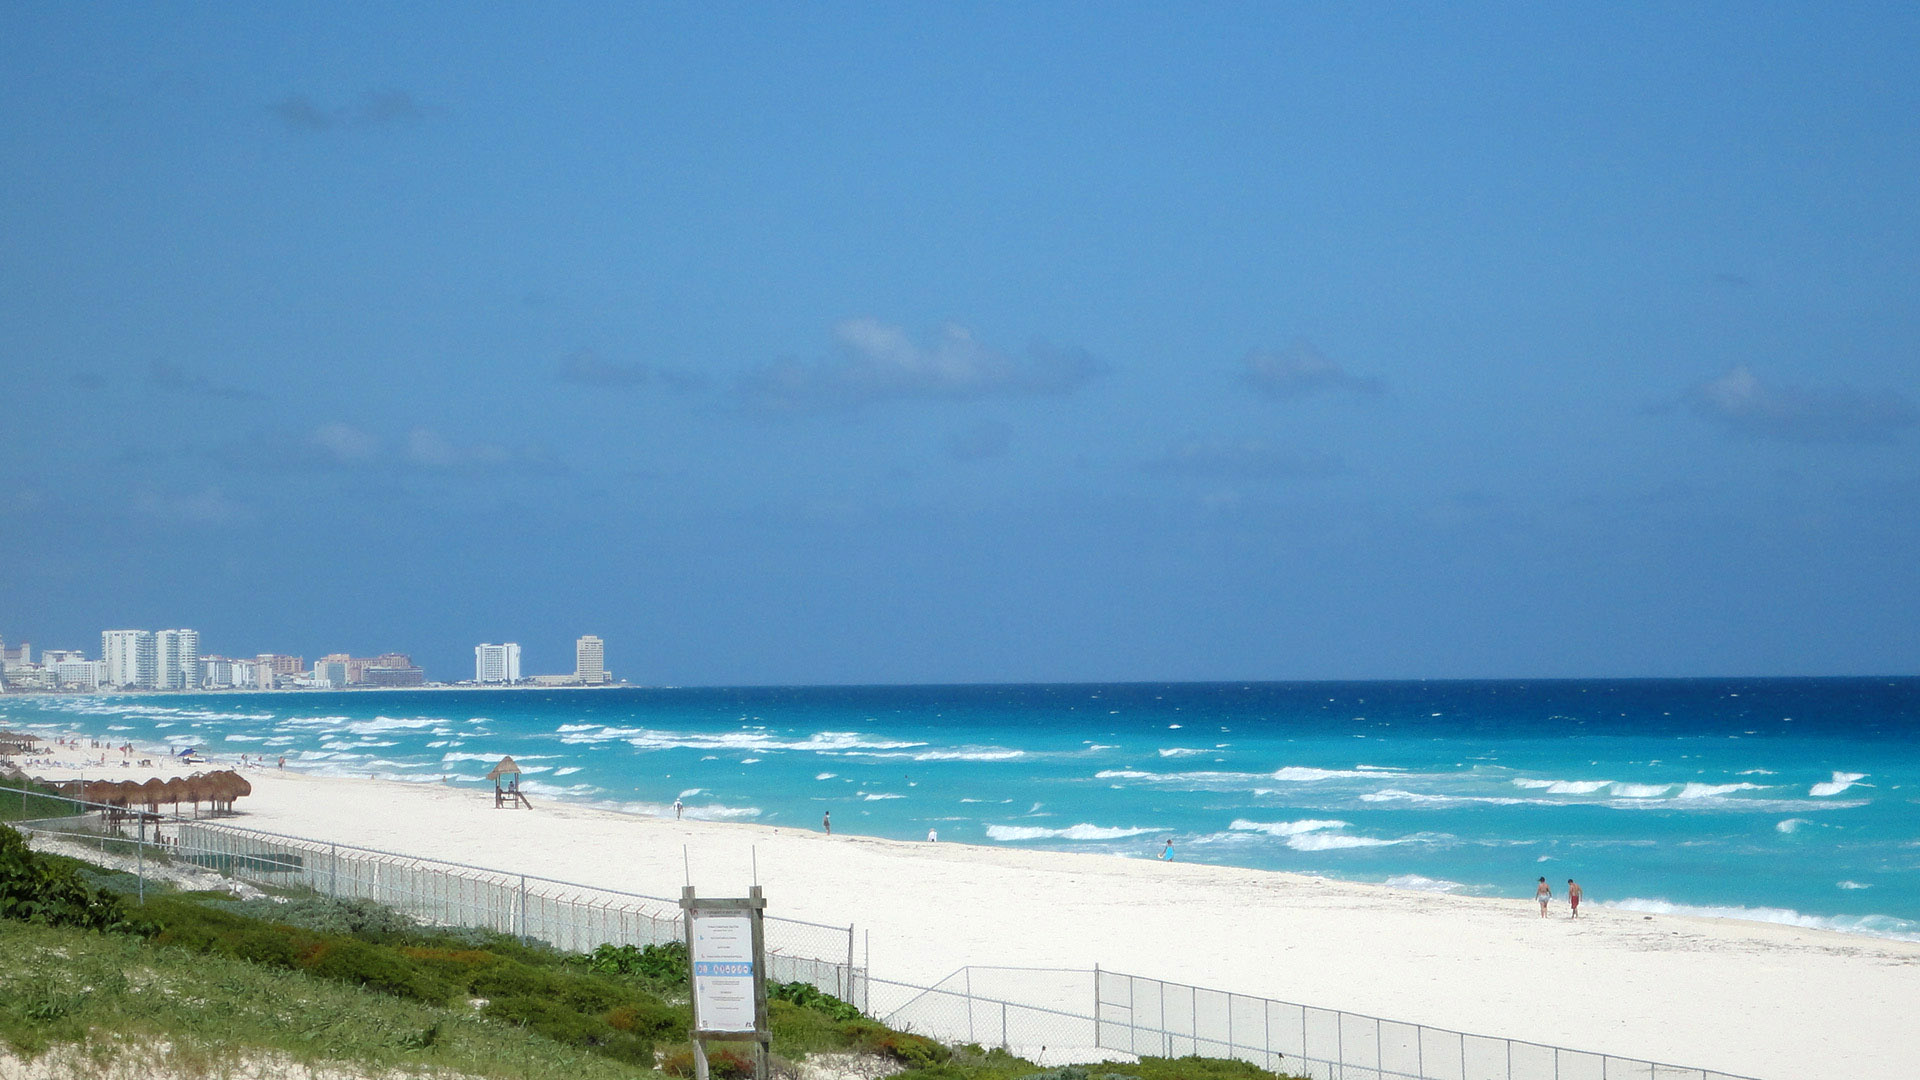 seaside-landscape-and-scenery-in-cancun-mexico.jpg